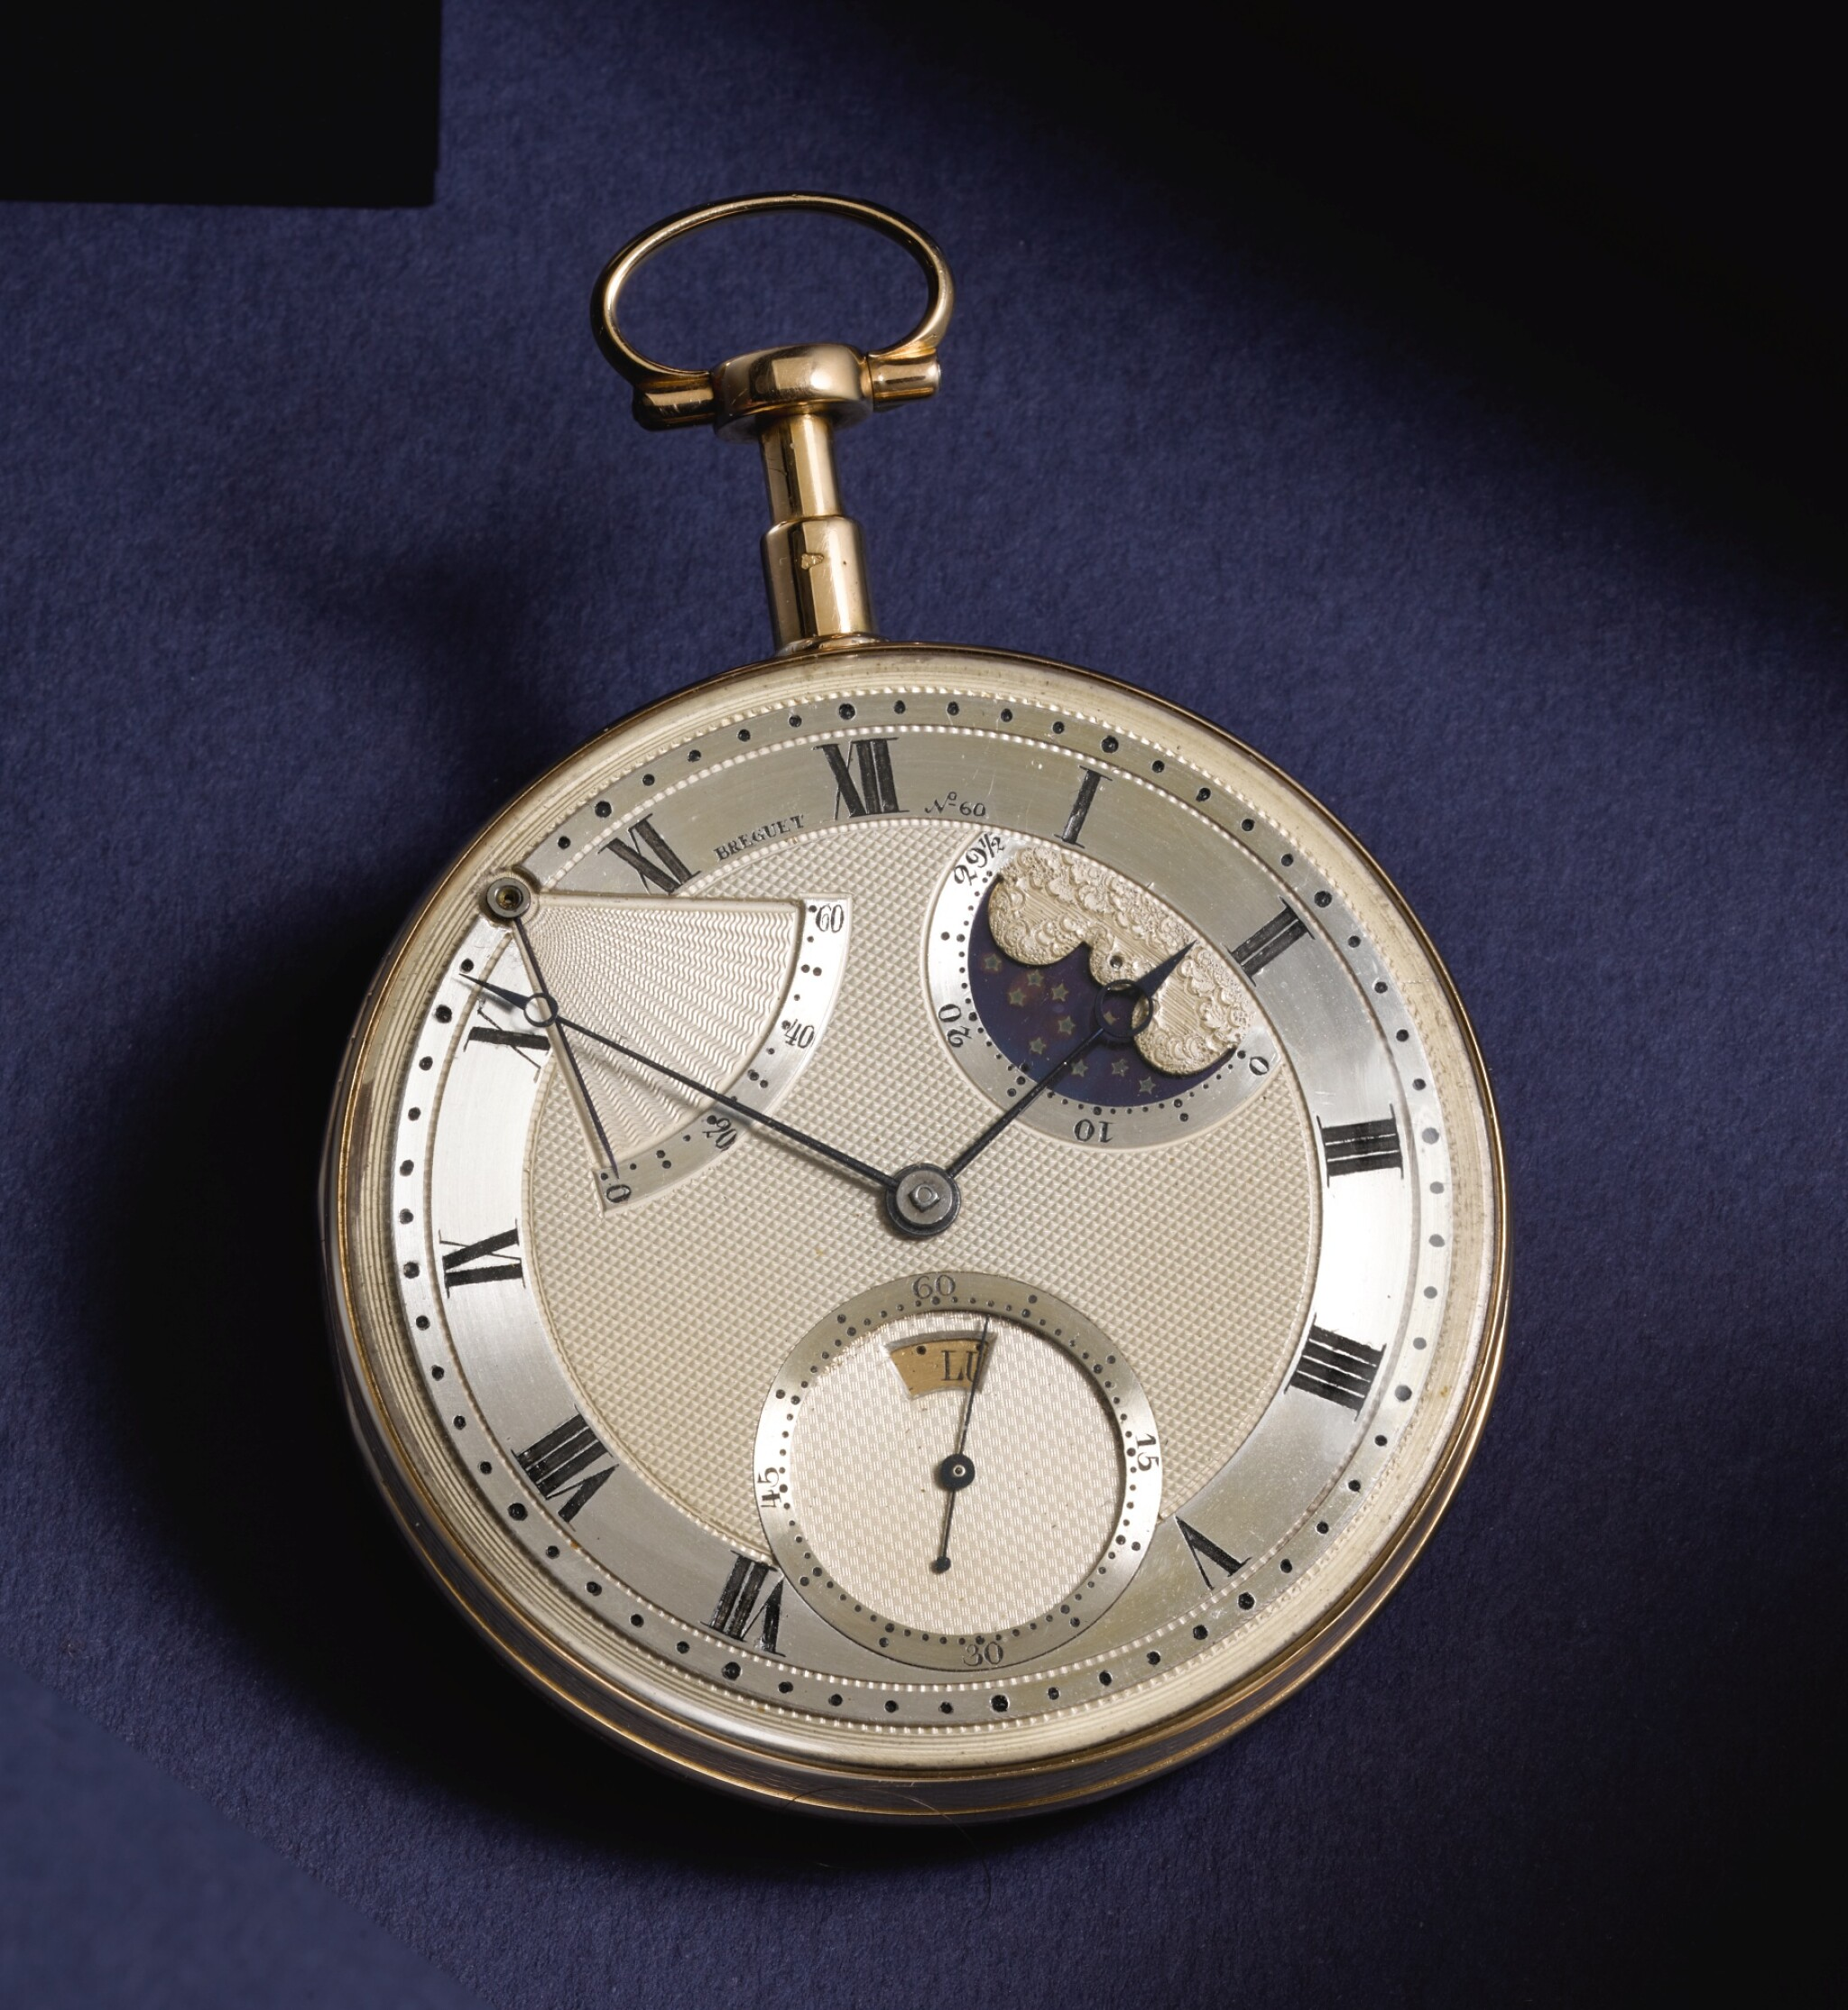 View full screen - View 1 of Lot 28. BREGUET  [ 寶璣]  | AN EXCEPTIONAL AND VERY RARE GOLD SELF-WINDING QUARTER REPEATING WATCH WITH MOON PHASES, DAY OF THE WEEK AND POWER RESERVE  NO. 60, 'PÉRPETUELLE' SOLD TO MONSIEUR JOHNSTON ON 5 JANUARY 1796 FOR 3,120 FRANCS  [ 極罕有黃金自動上鏈二問懷錶備月相、星期及動力儲存顯示,編號60,1796年1月5日以3,120法郎售出].